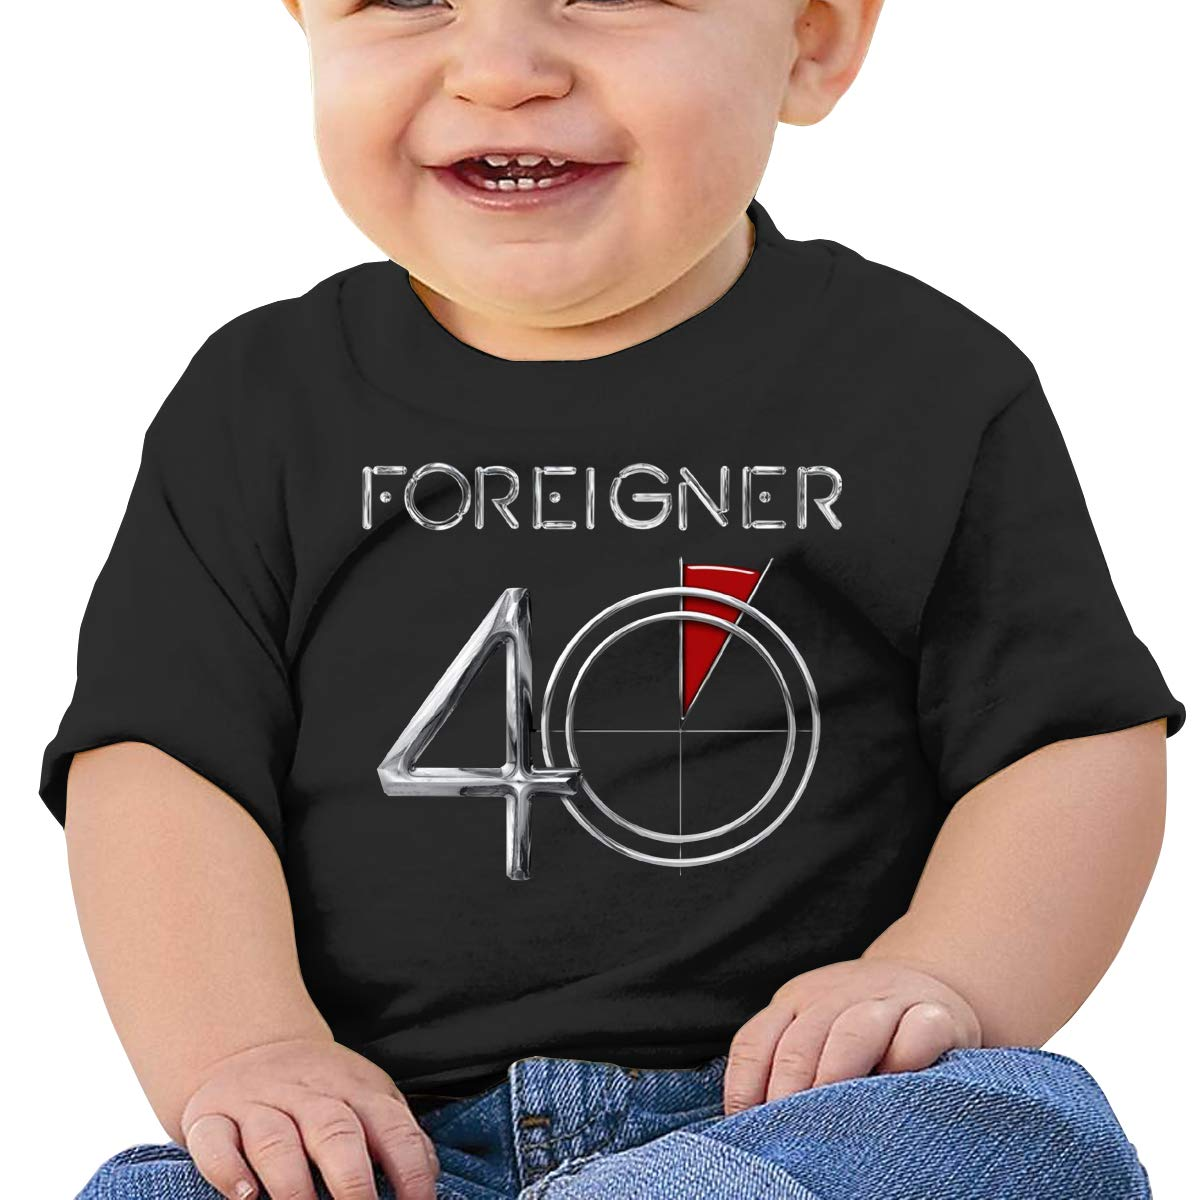 Kangtians Baby Foreigner Shirts Tee Toddler Cotton Shirt